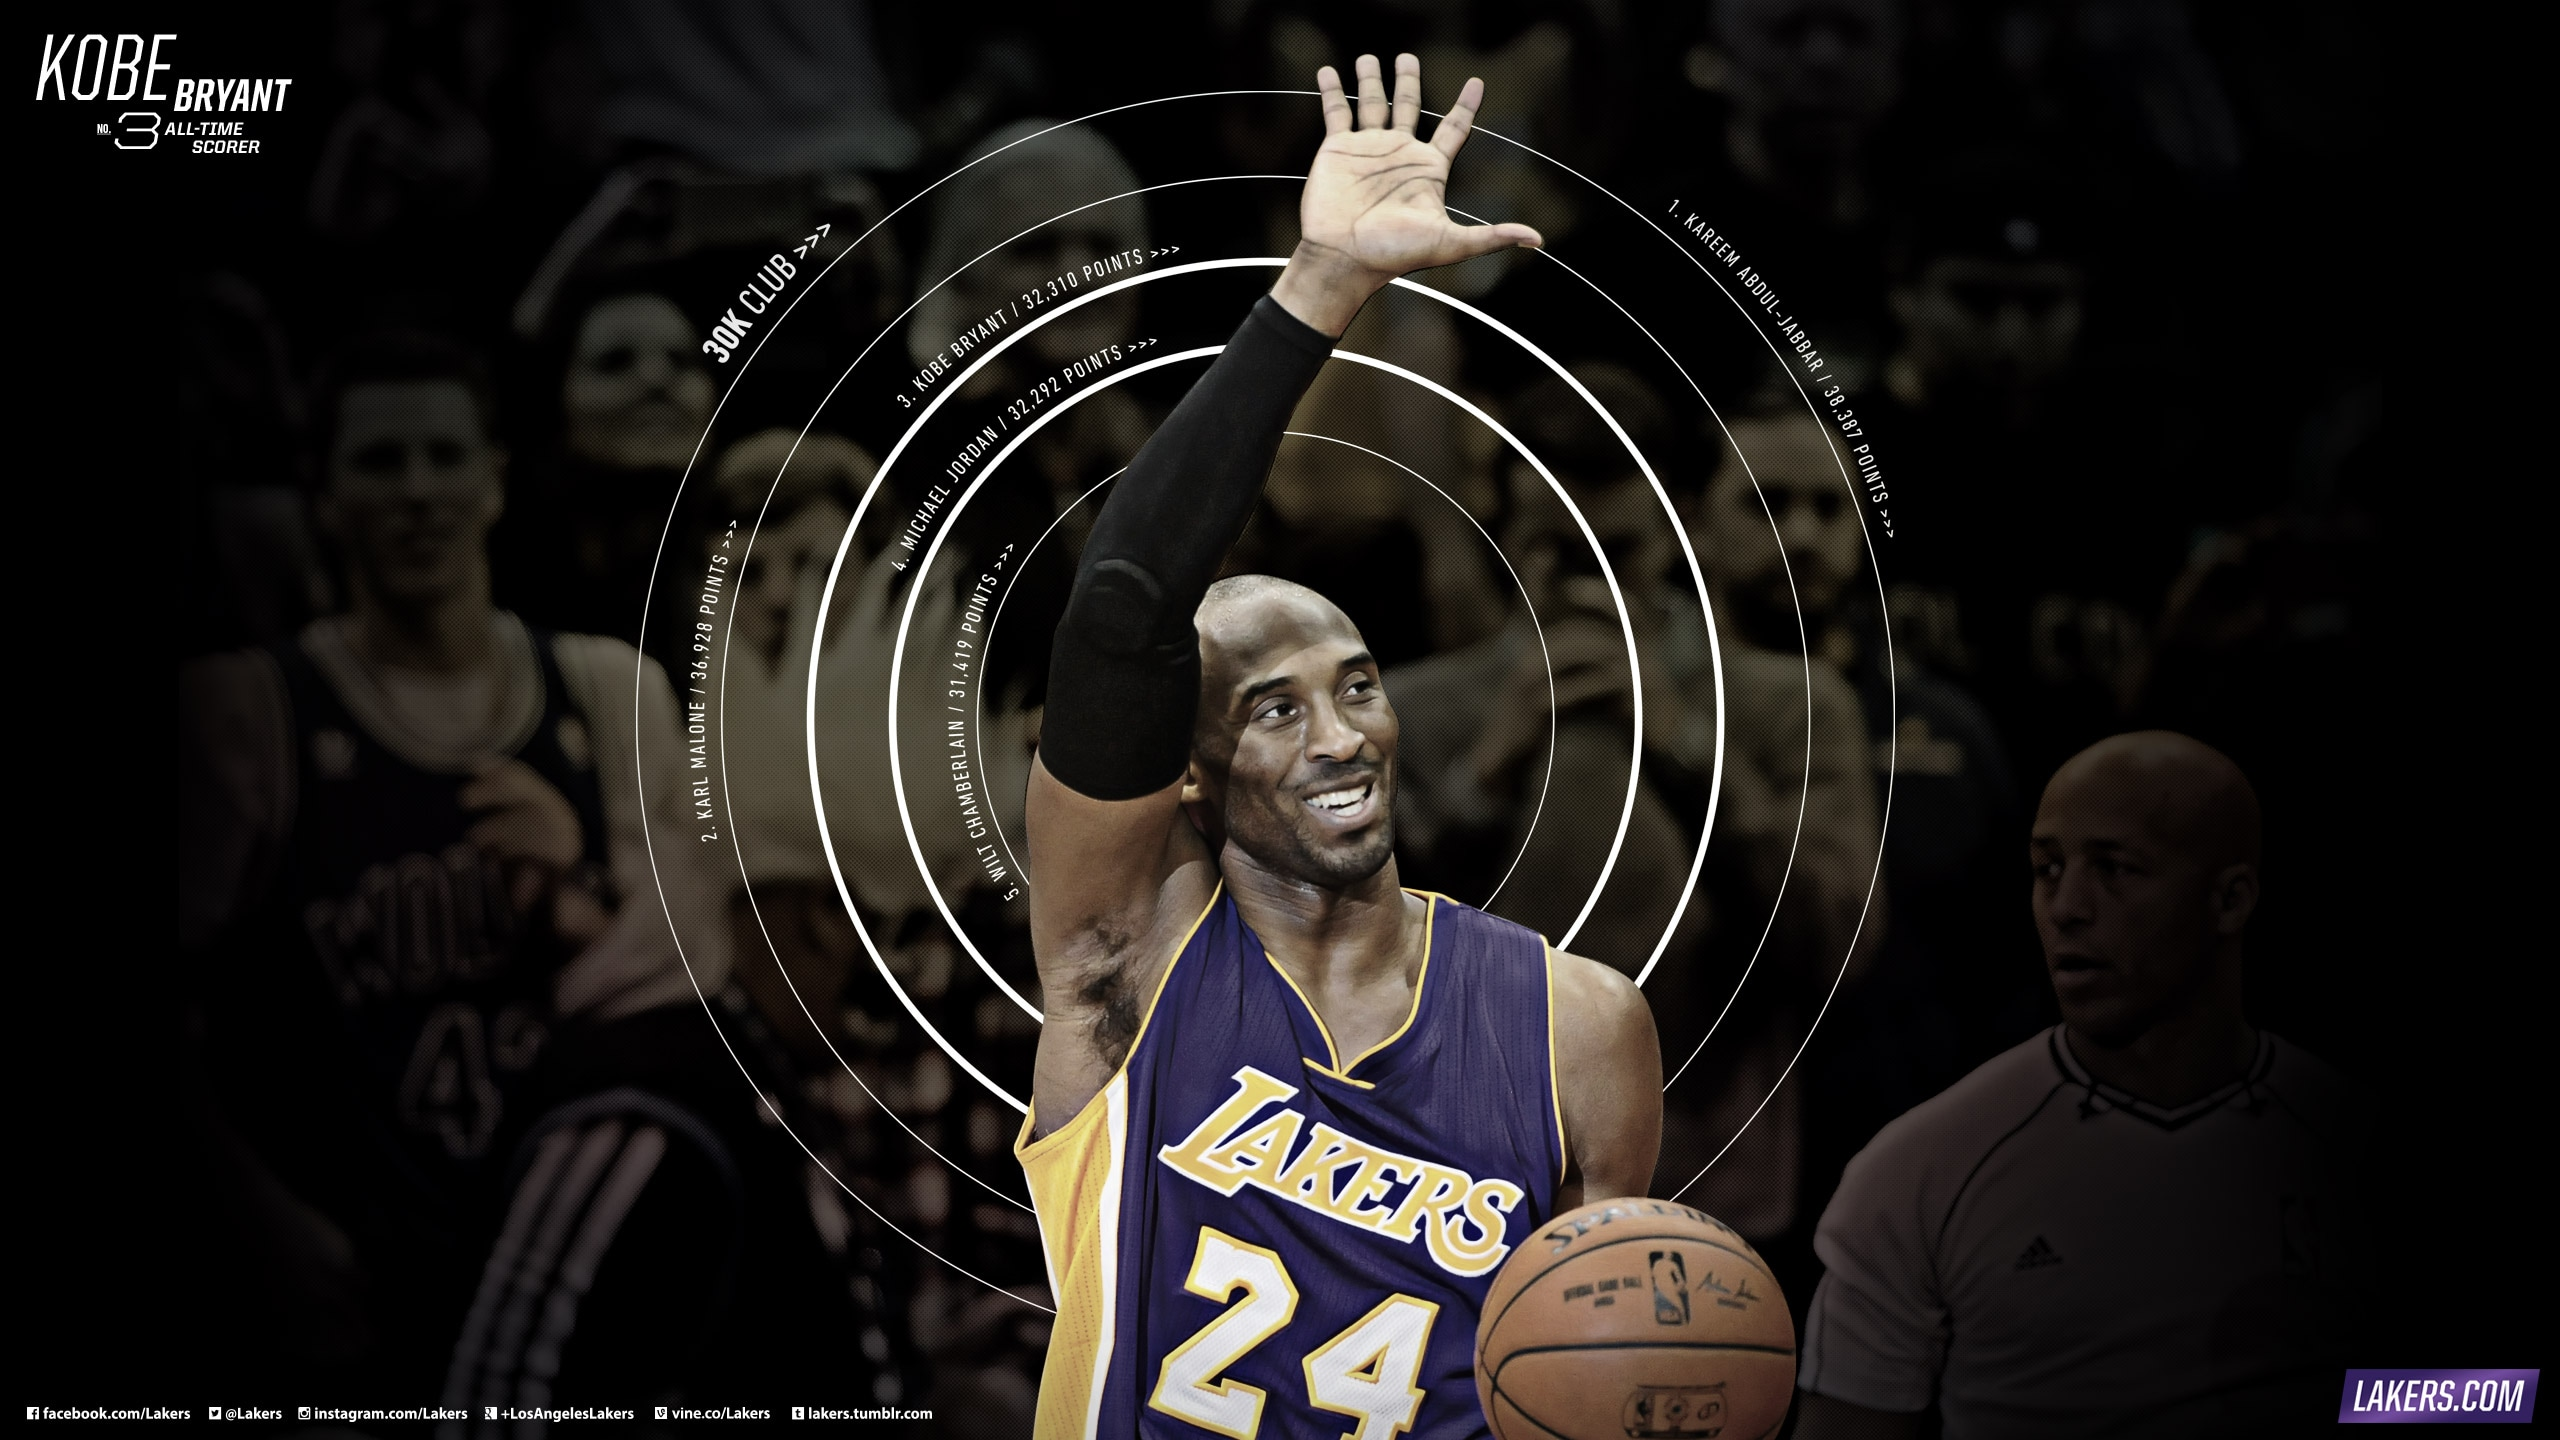 Cool Wallpaper Logo Kobe Bryant - kobe_3wallpaper  Graphic_573977.jpg